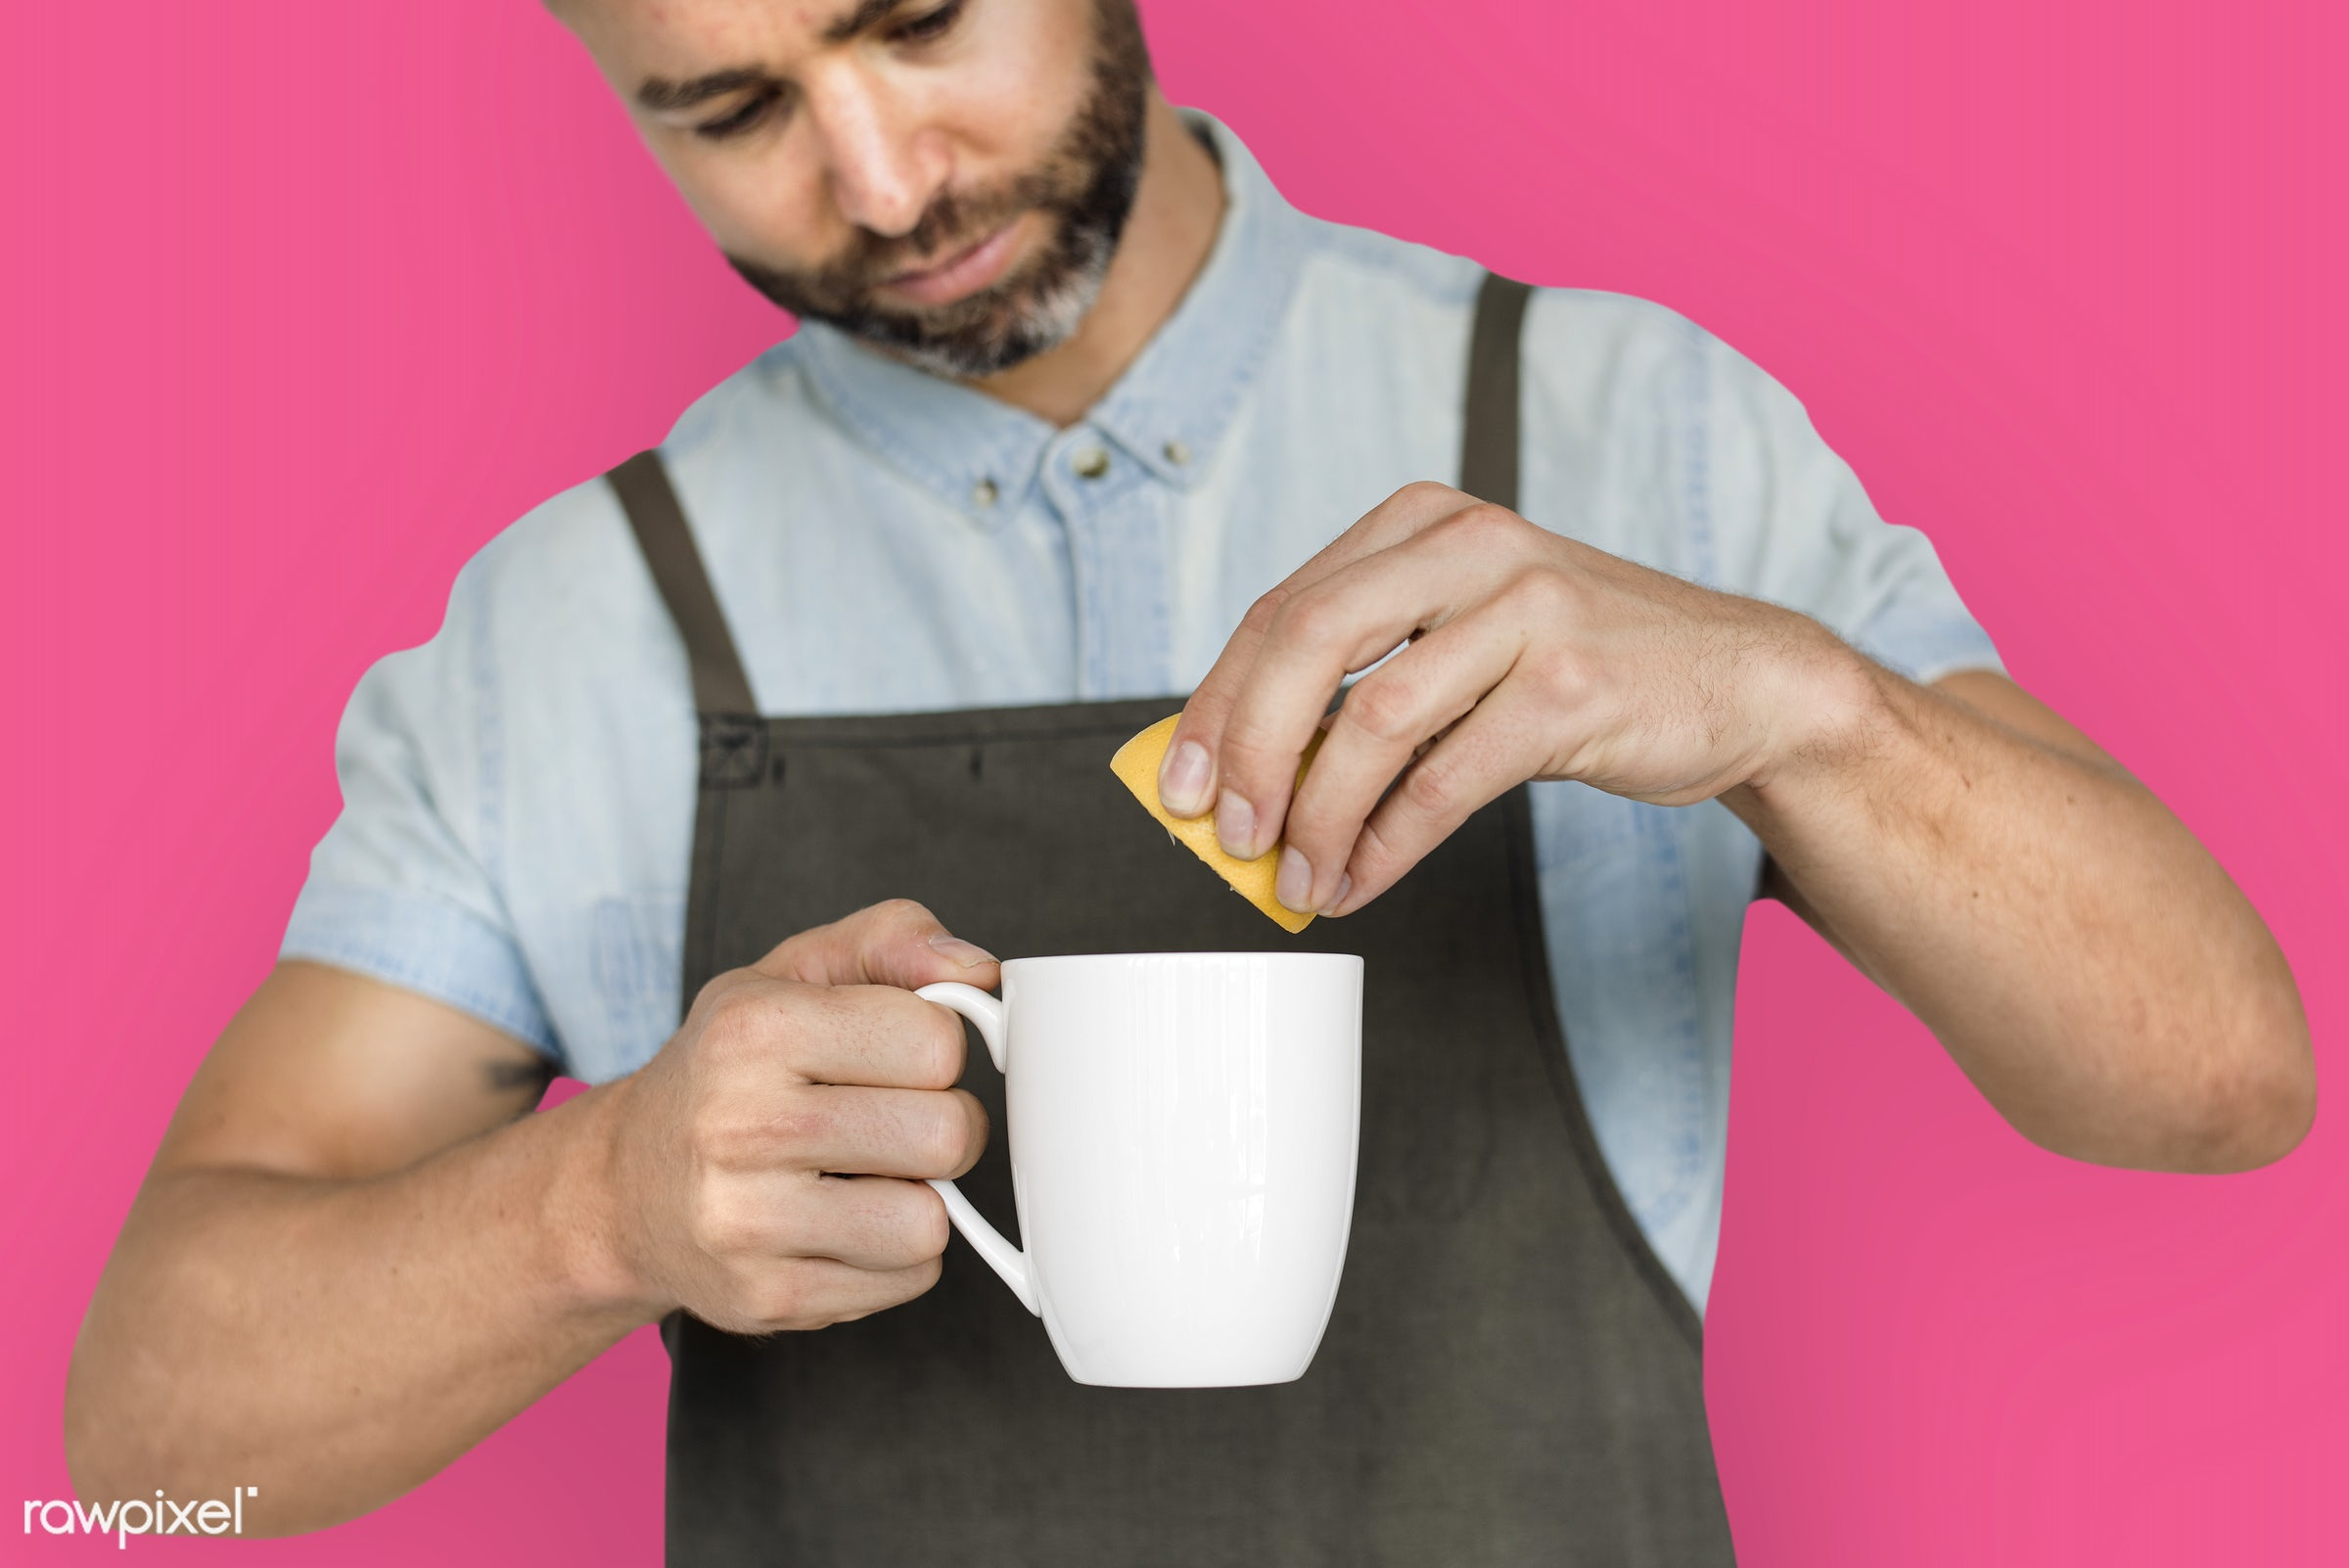 studio, person, model, tea, race, people, style, solo, casual, lifestyle, man, isolated, guy, male, gesture, posing,...